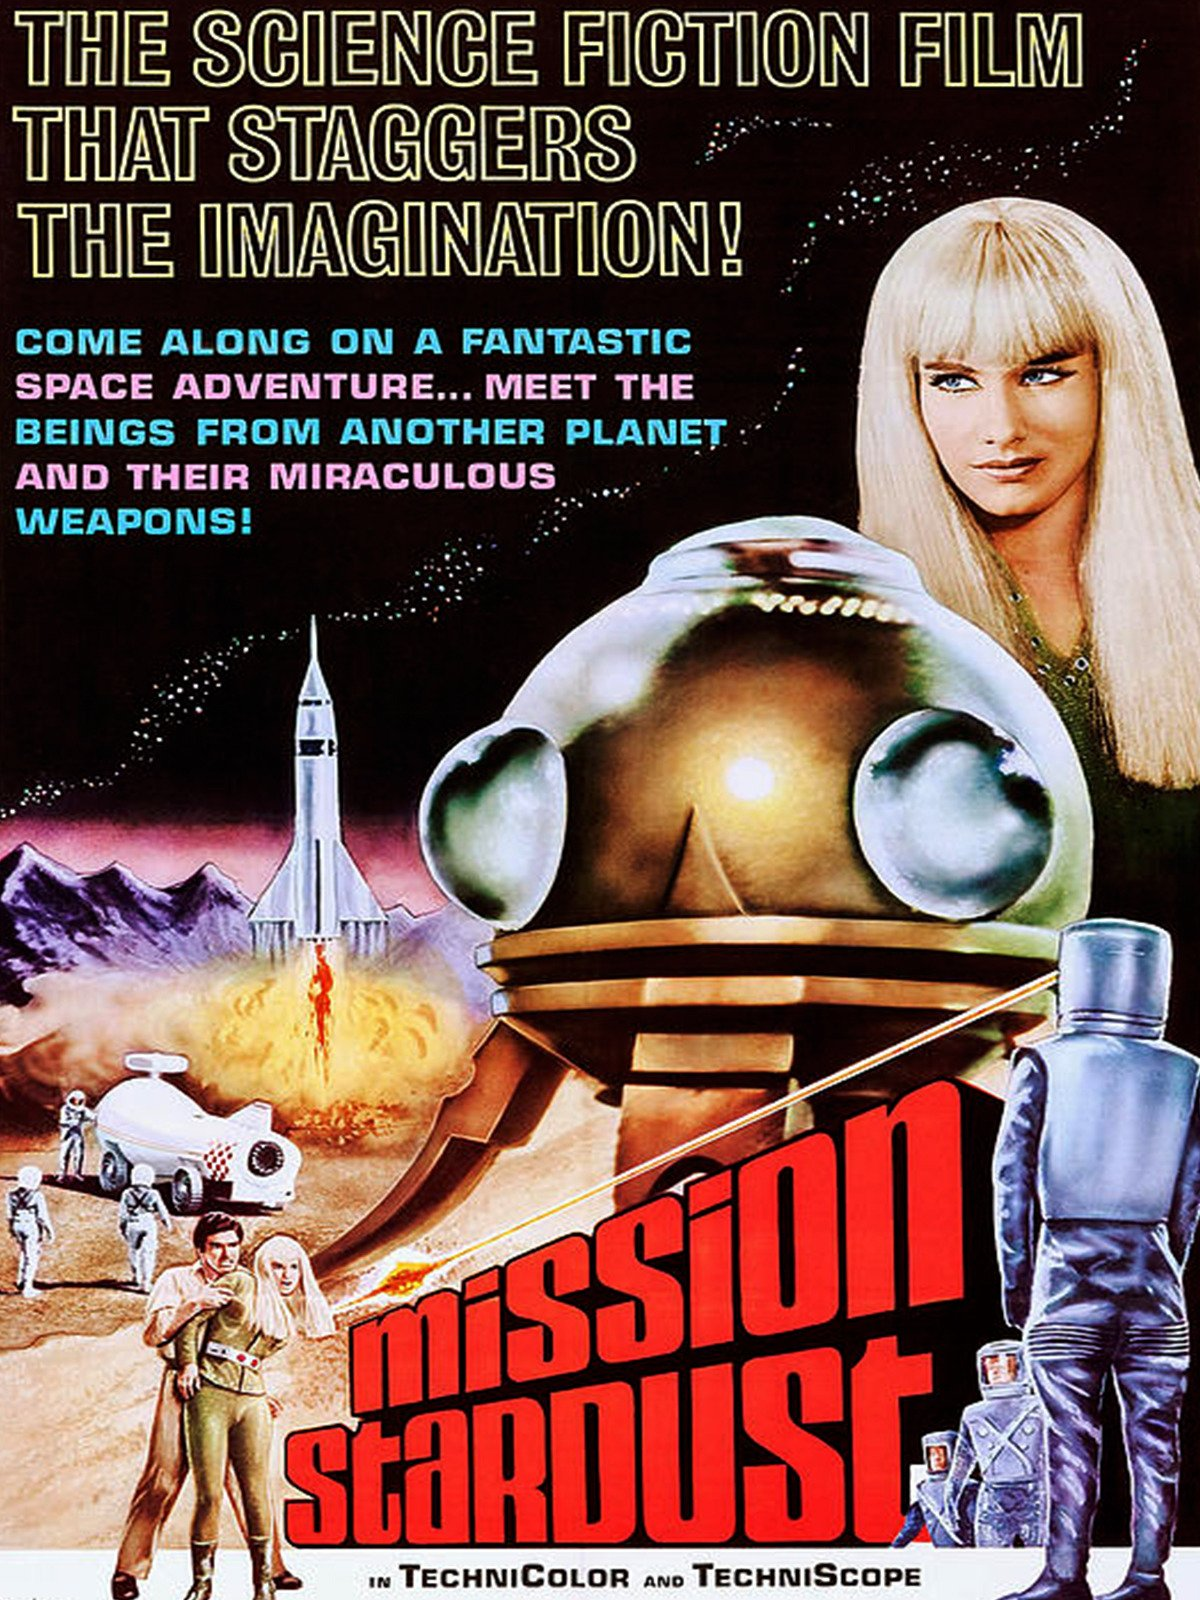 Mission Stardust